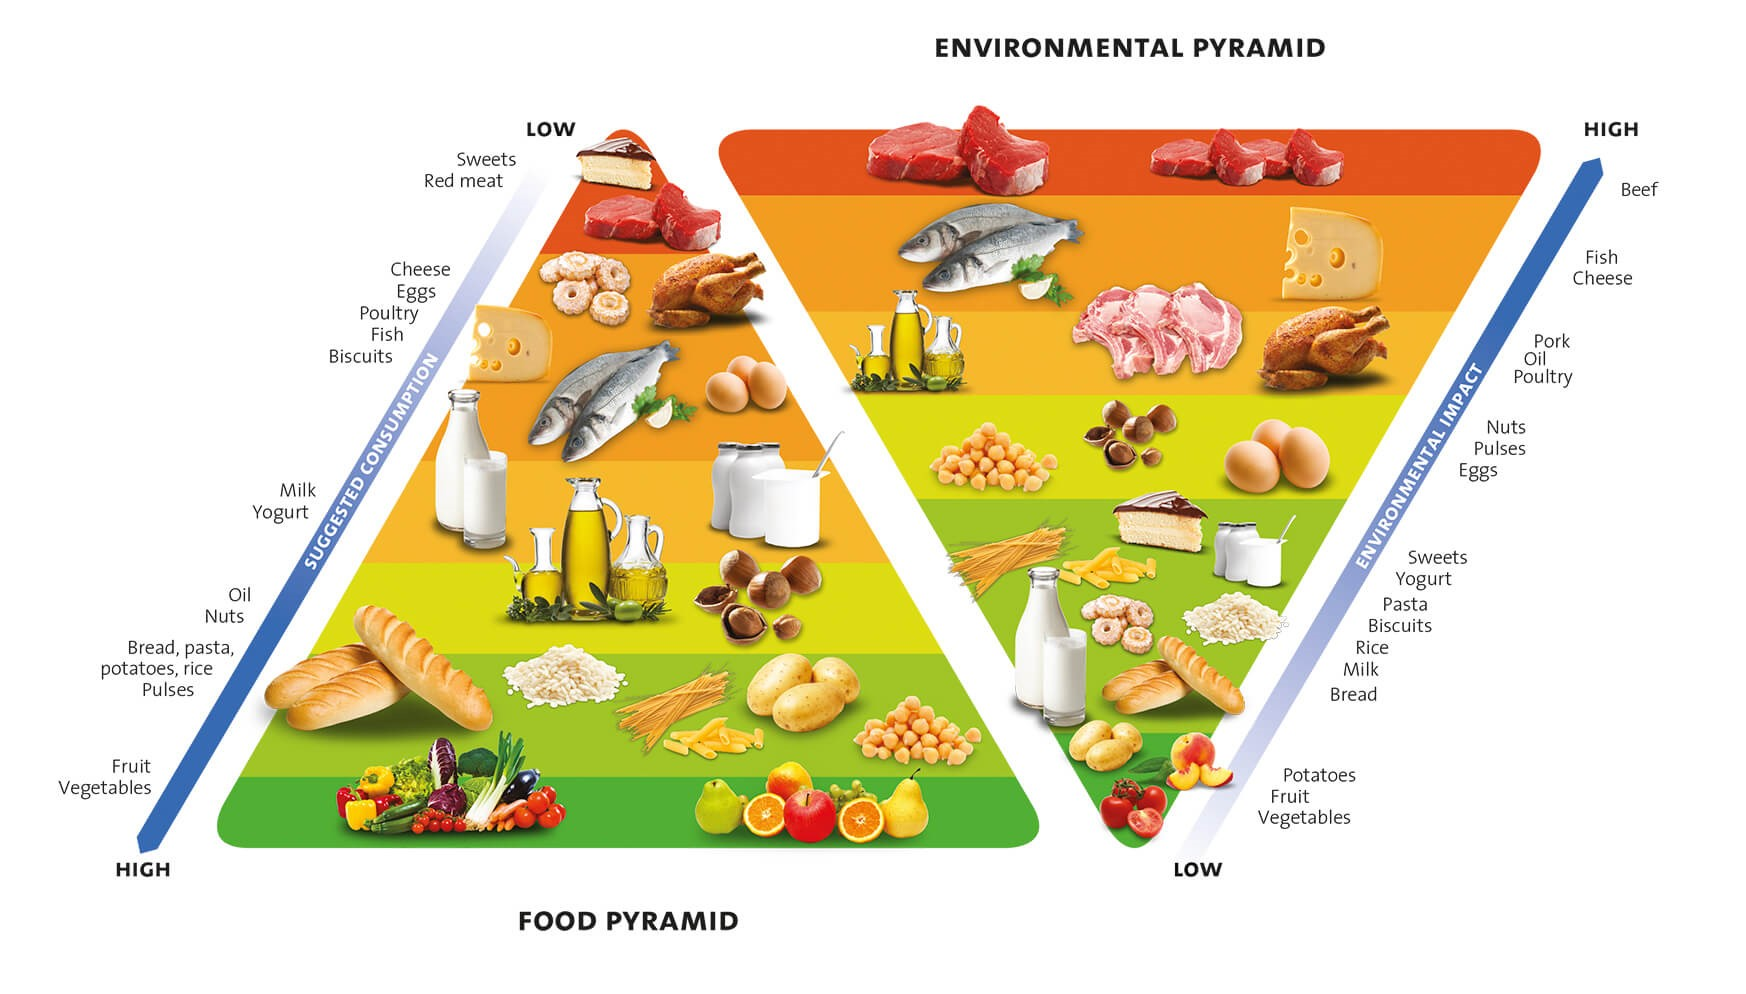 food pyramid barilla center for food & nutrion 2015.jpg